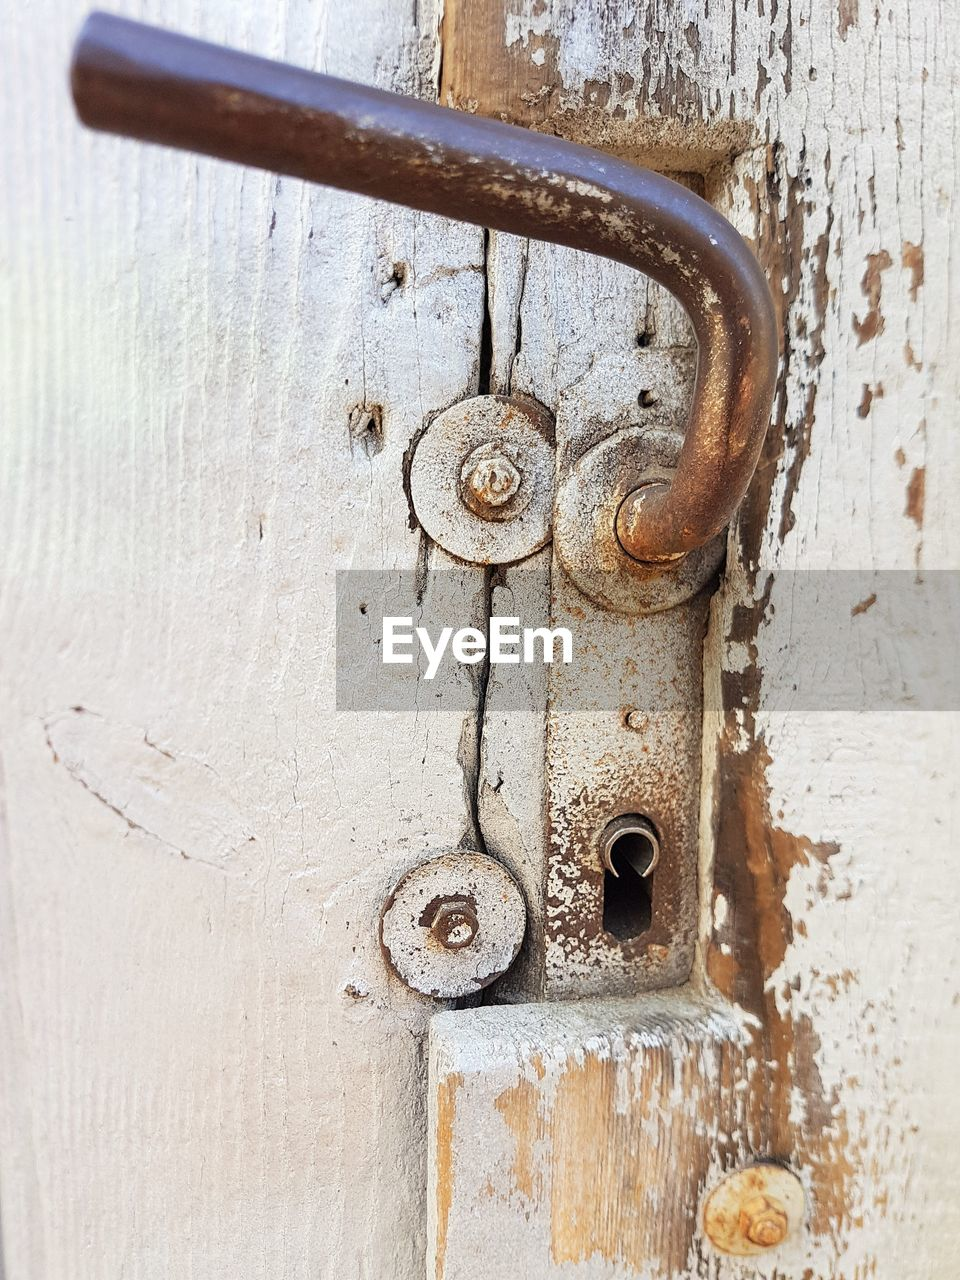 metal, rusty, door, no people, lock, security, entrance, close-up, safety, protection, wood - material, weathered, old, day, keyhole, outdoors, full frame, decline, deterioration, closed, latch